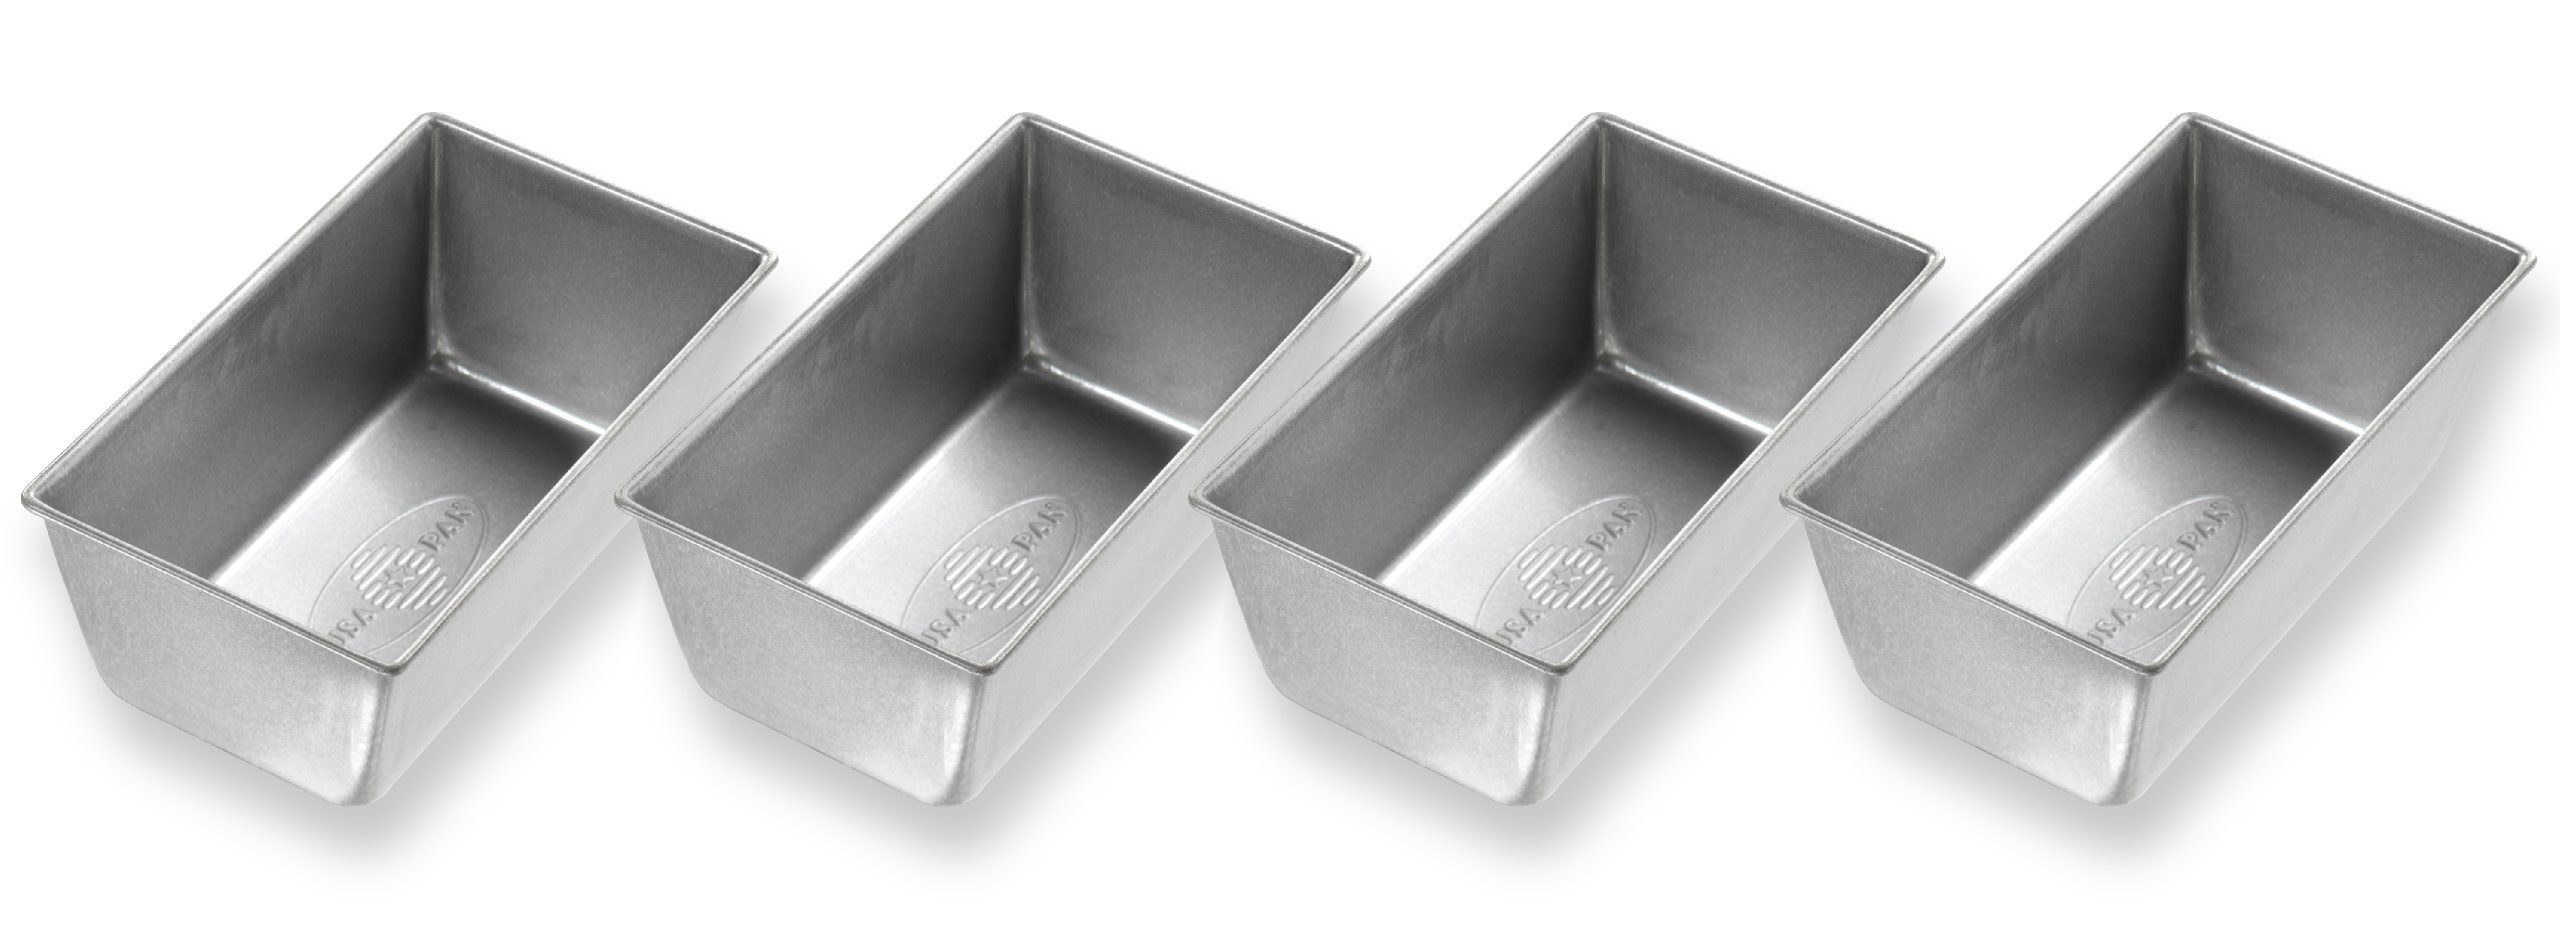 USA Pan Bakeware Mini Loaf Pan, Set of 4, Nonstick & Quick Release Coating, Made in the USA from Aluminized Steel by USA Pan